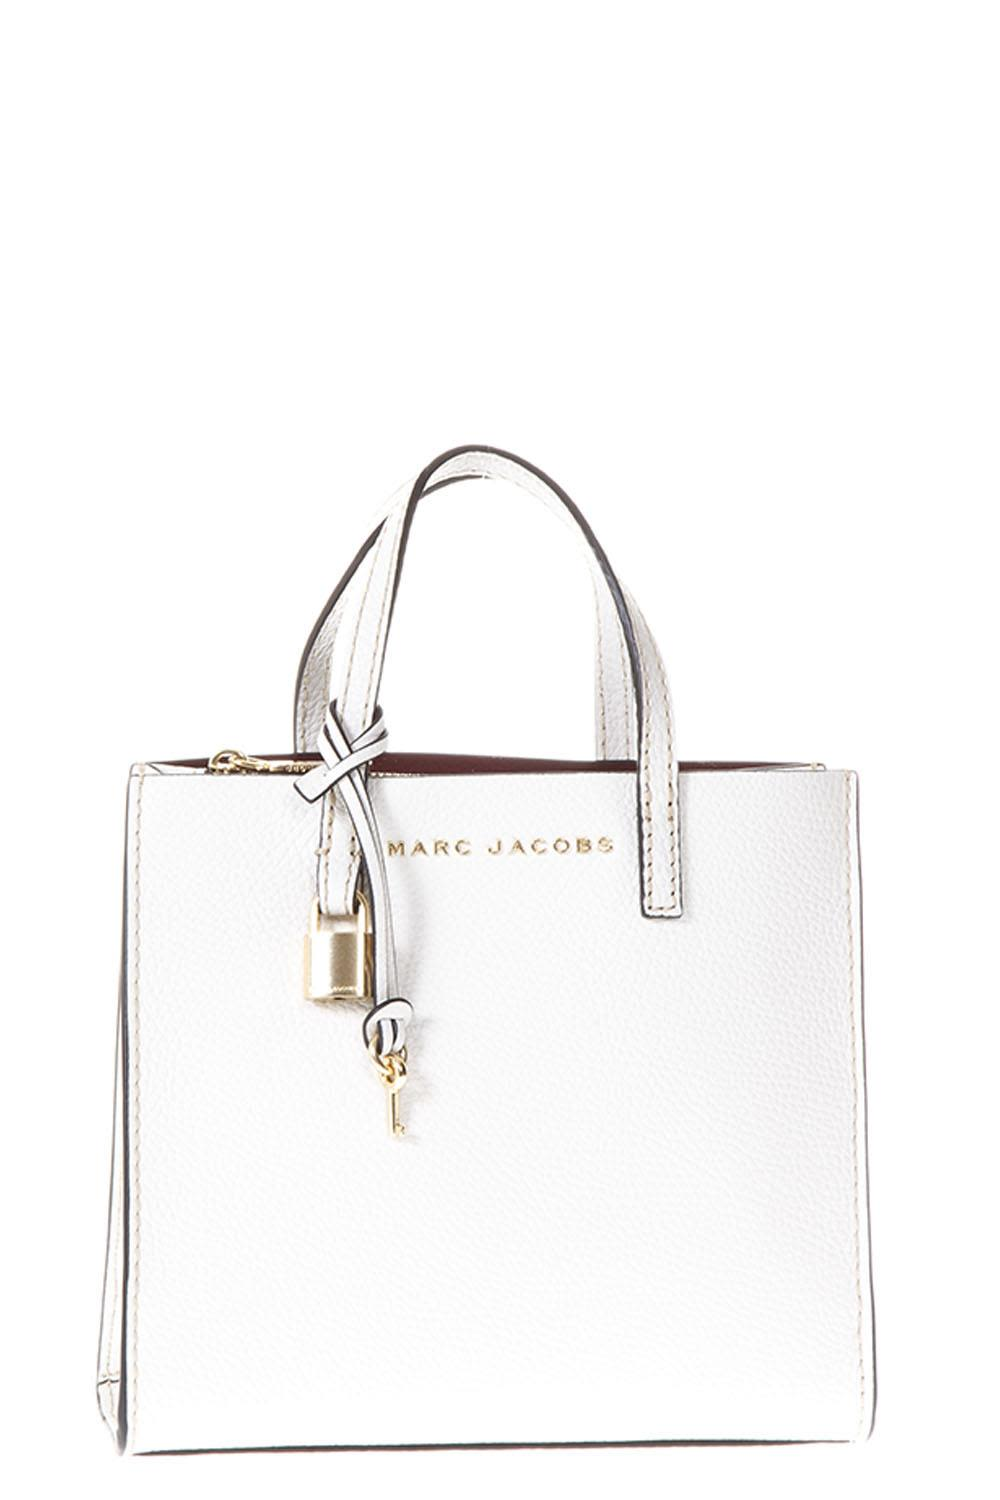 Marc Jacobs Mini Grind White Leather Tote Bag